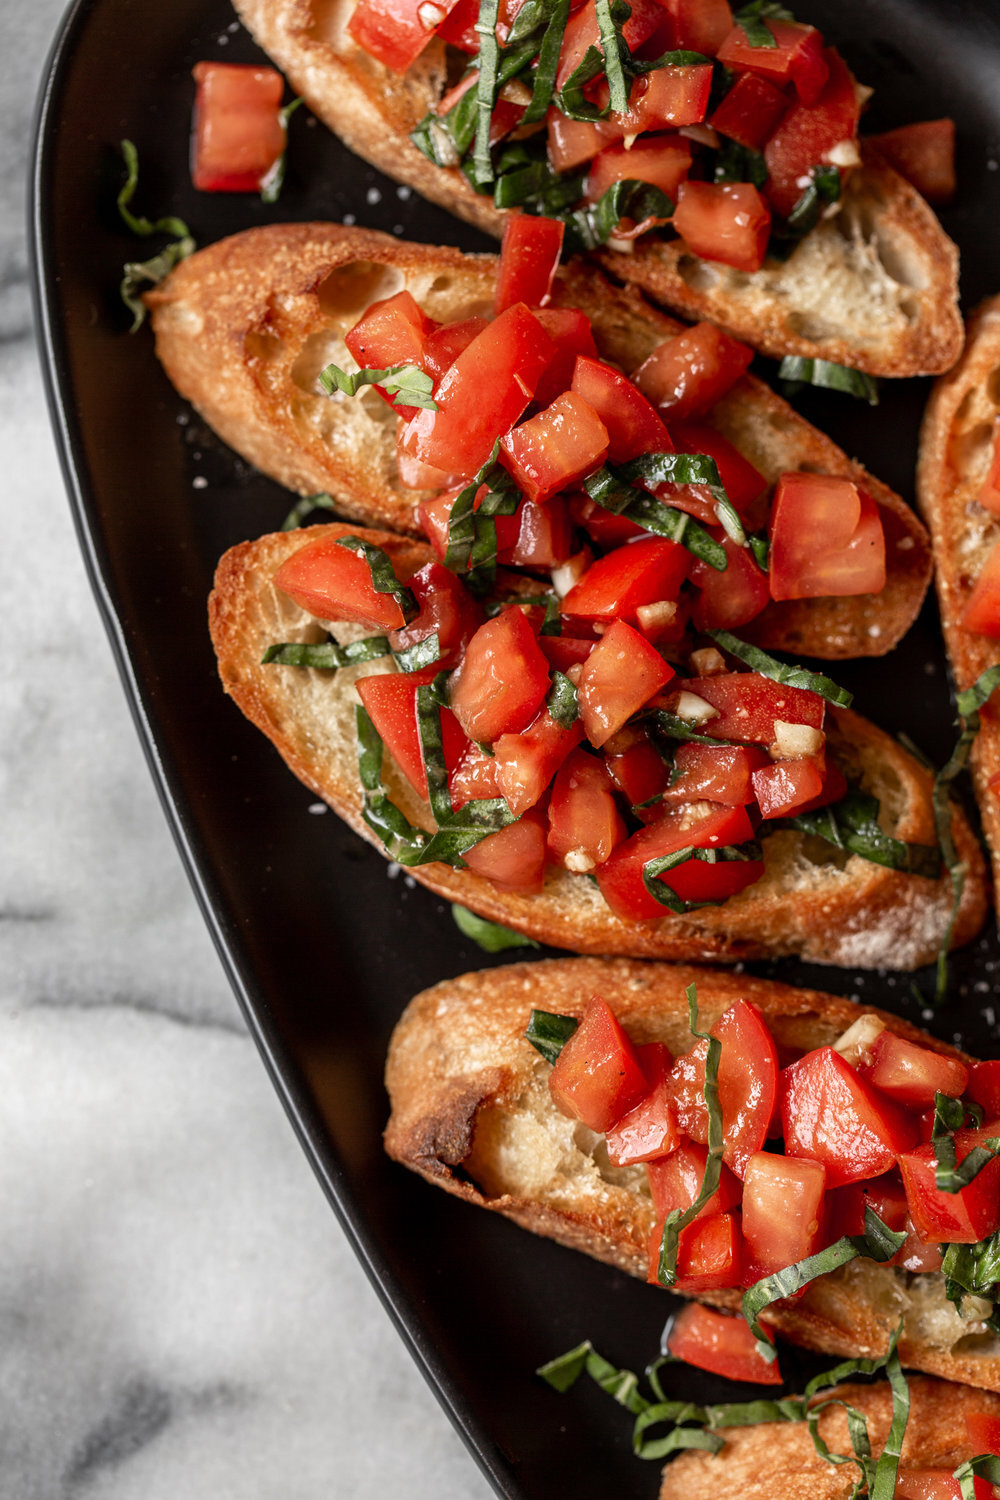 - Bruschetta- At its core this recipe is seasoned, chopped tomatoes over toasted bread. The Italian classic is easy to make and incredibly flavorful.